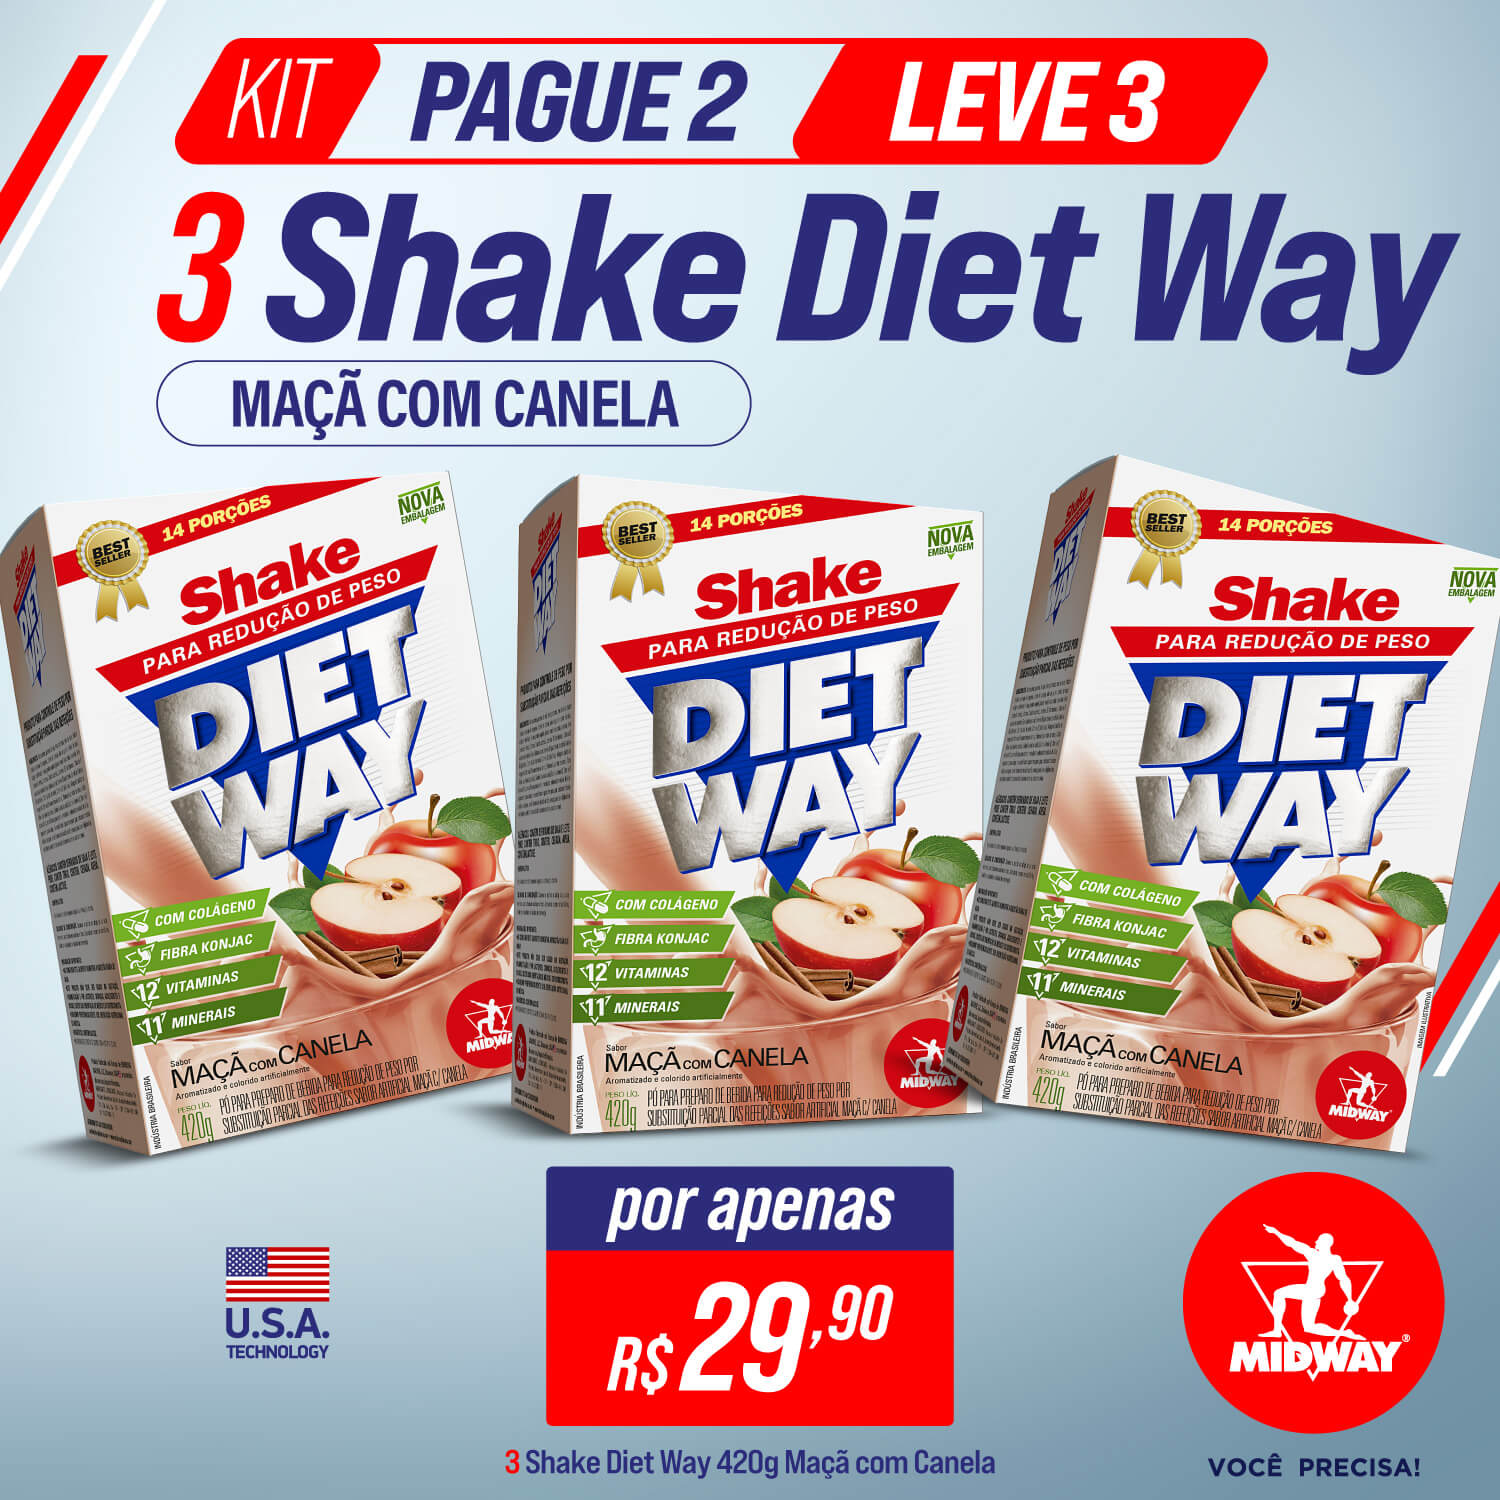 KIT Pague 2 Leve 3 Shake Diet Way 420 g Maçã com Canela